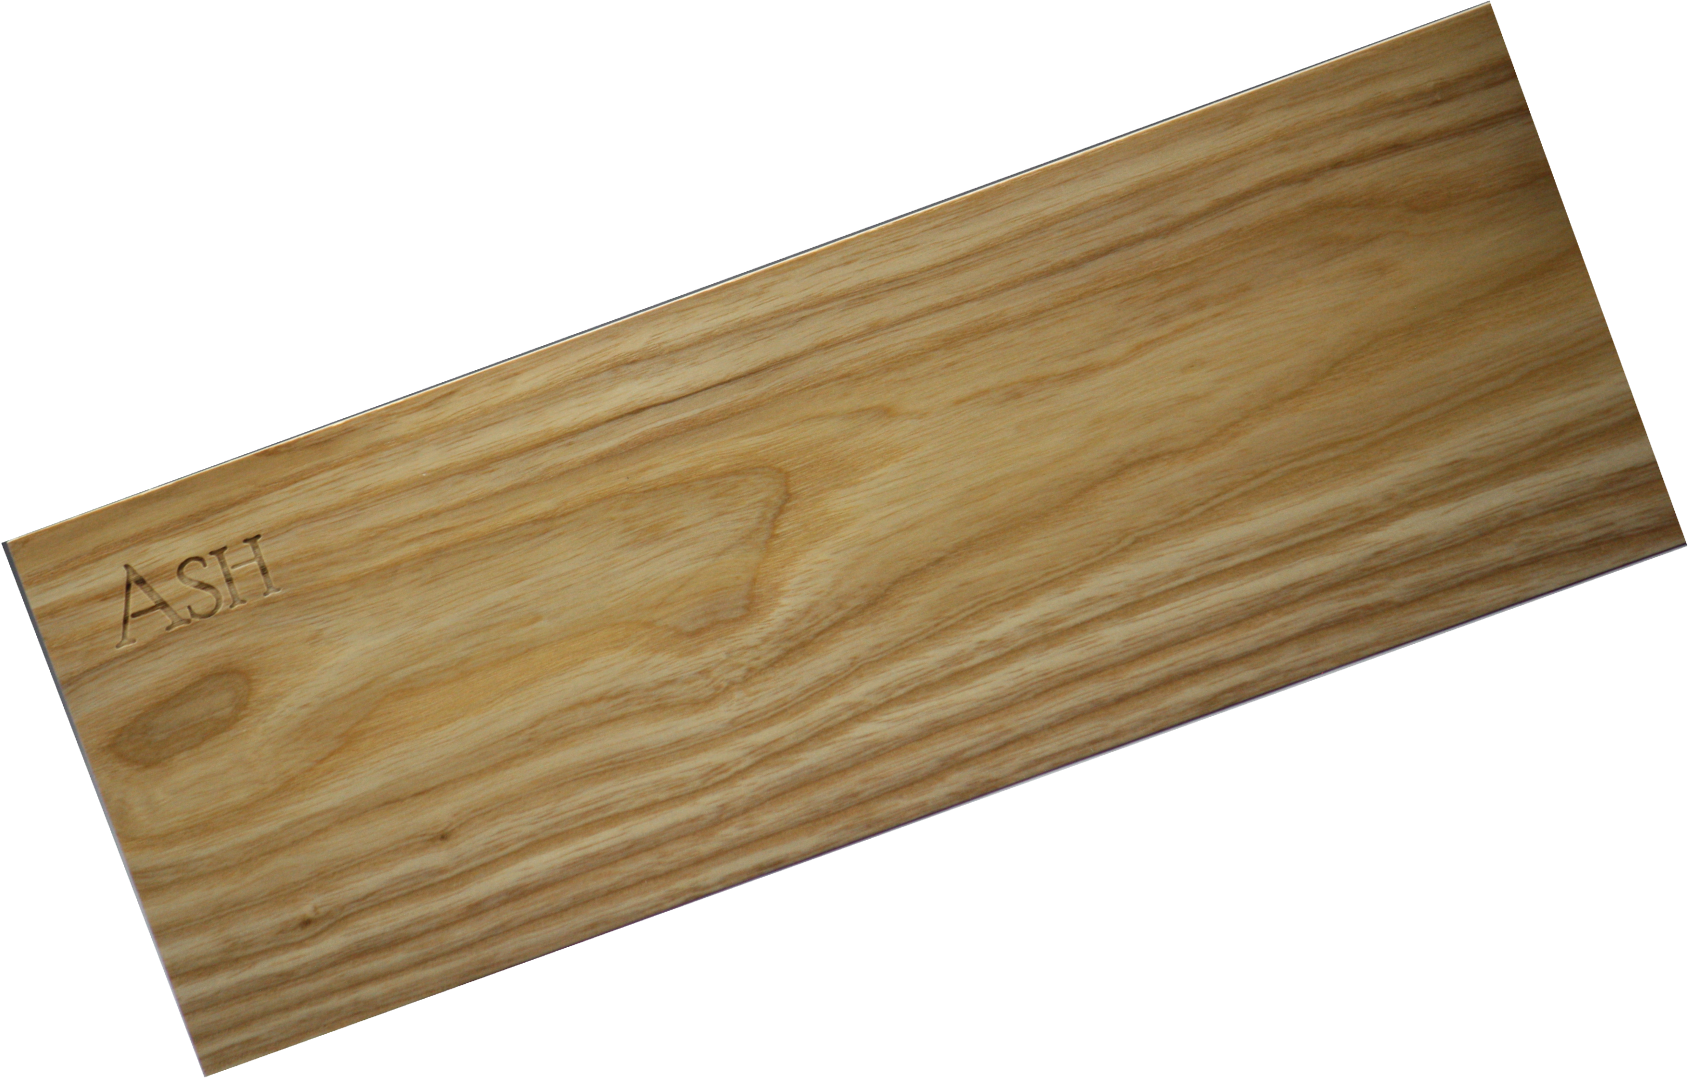 "Wood Strip<br/> 12"" x 24""<br/> x 1/4"" - LSTX54-A-F"